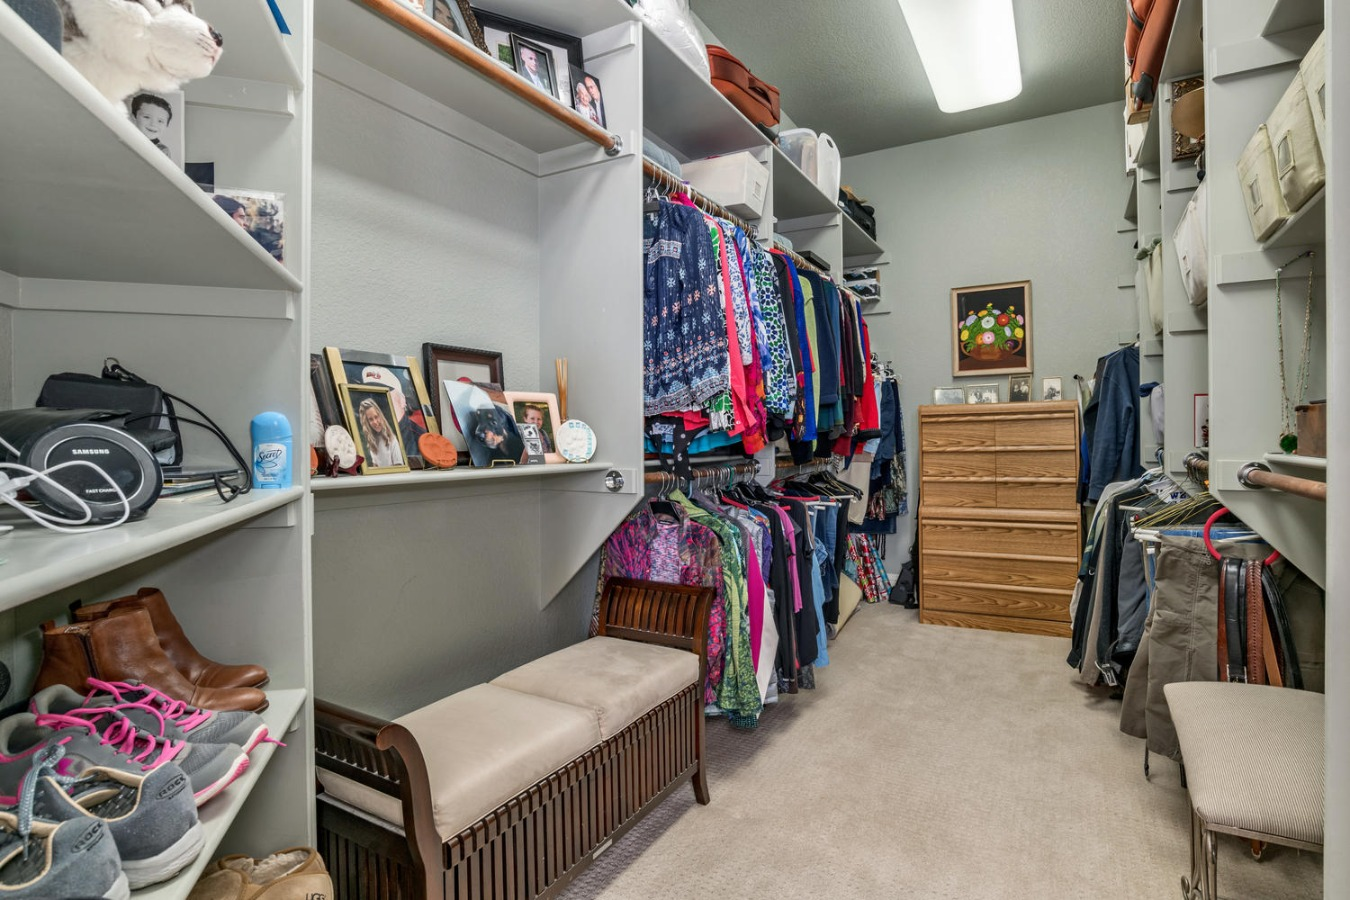 Her Dream Walk-in Closet is Huge - 14 x 9